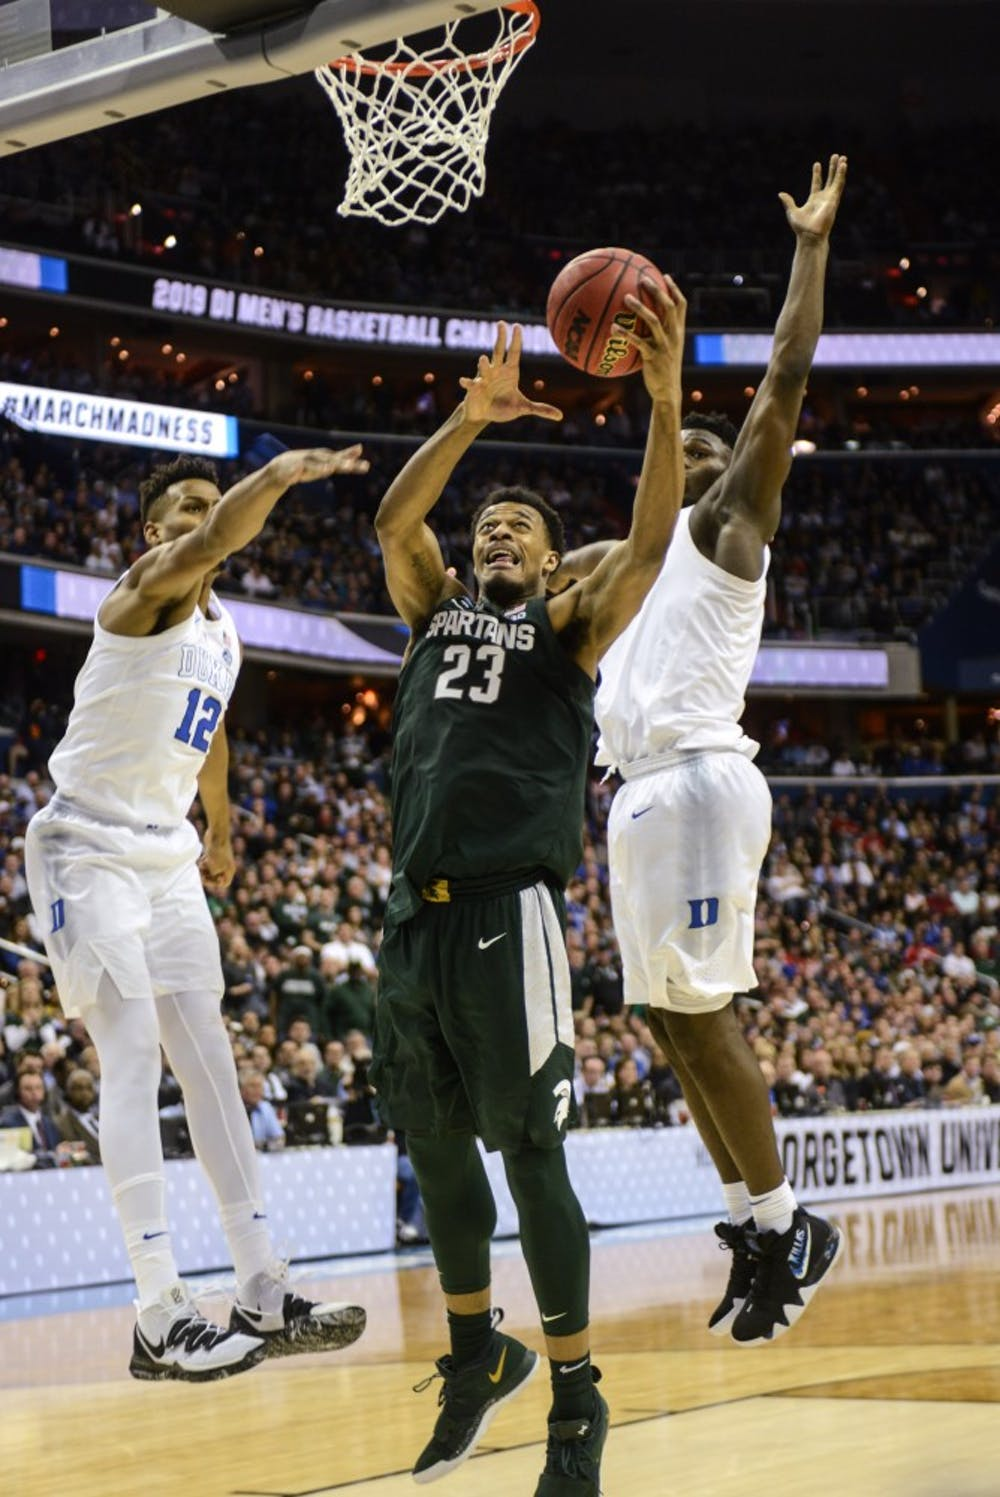 <p>Sophomore forward Xavier Tillman (23) shoots the ball during the game against Duke on March 31, 2019 at Capital One Arena. The Spartans defeated the Blue Devils, 68-67. The Spartans are the East Regional Winners and are headed to the Final Four.</p>